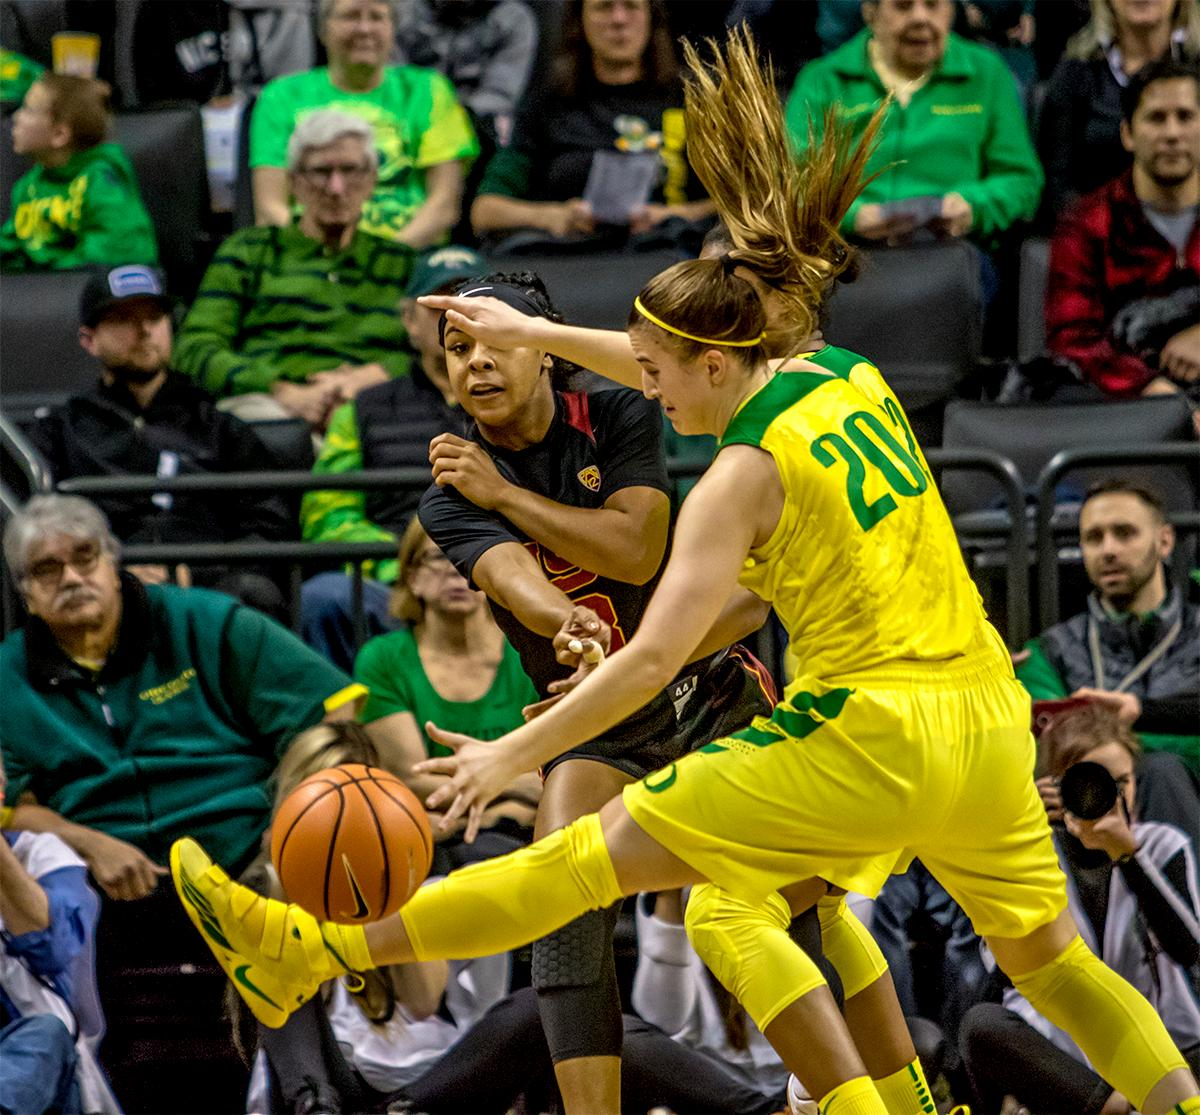 the Trojan's Minyon Moore (#3) passes the ball by the Duck's Sabrina Ionescu (#20). The Oregon Ducks defeated the USC Trojans 80-74 on Friday at Matthew Knight Arena in a  game that went into double overtime. Lexi Bando sealed the Ducks victory by scoring a three-pointer in the closing of the game. Ruthy Hebard set a new NCAA record of 30 consecutive field goals, the old record being 28. Ruthy Hebard got a double-double with 27 points and 10 rebounds, Mallory McGwire also had 10 rebounds. The ducks had four players in double digits. The Ducks are now 24-4, 13-2 in the Pac-12, and are tied for first with Stanford. Photo by August Frank, Oregon News Lab